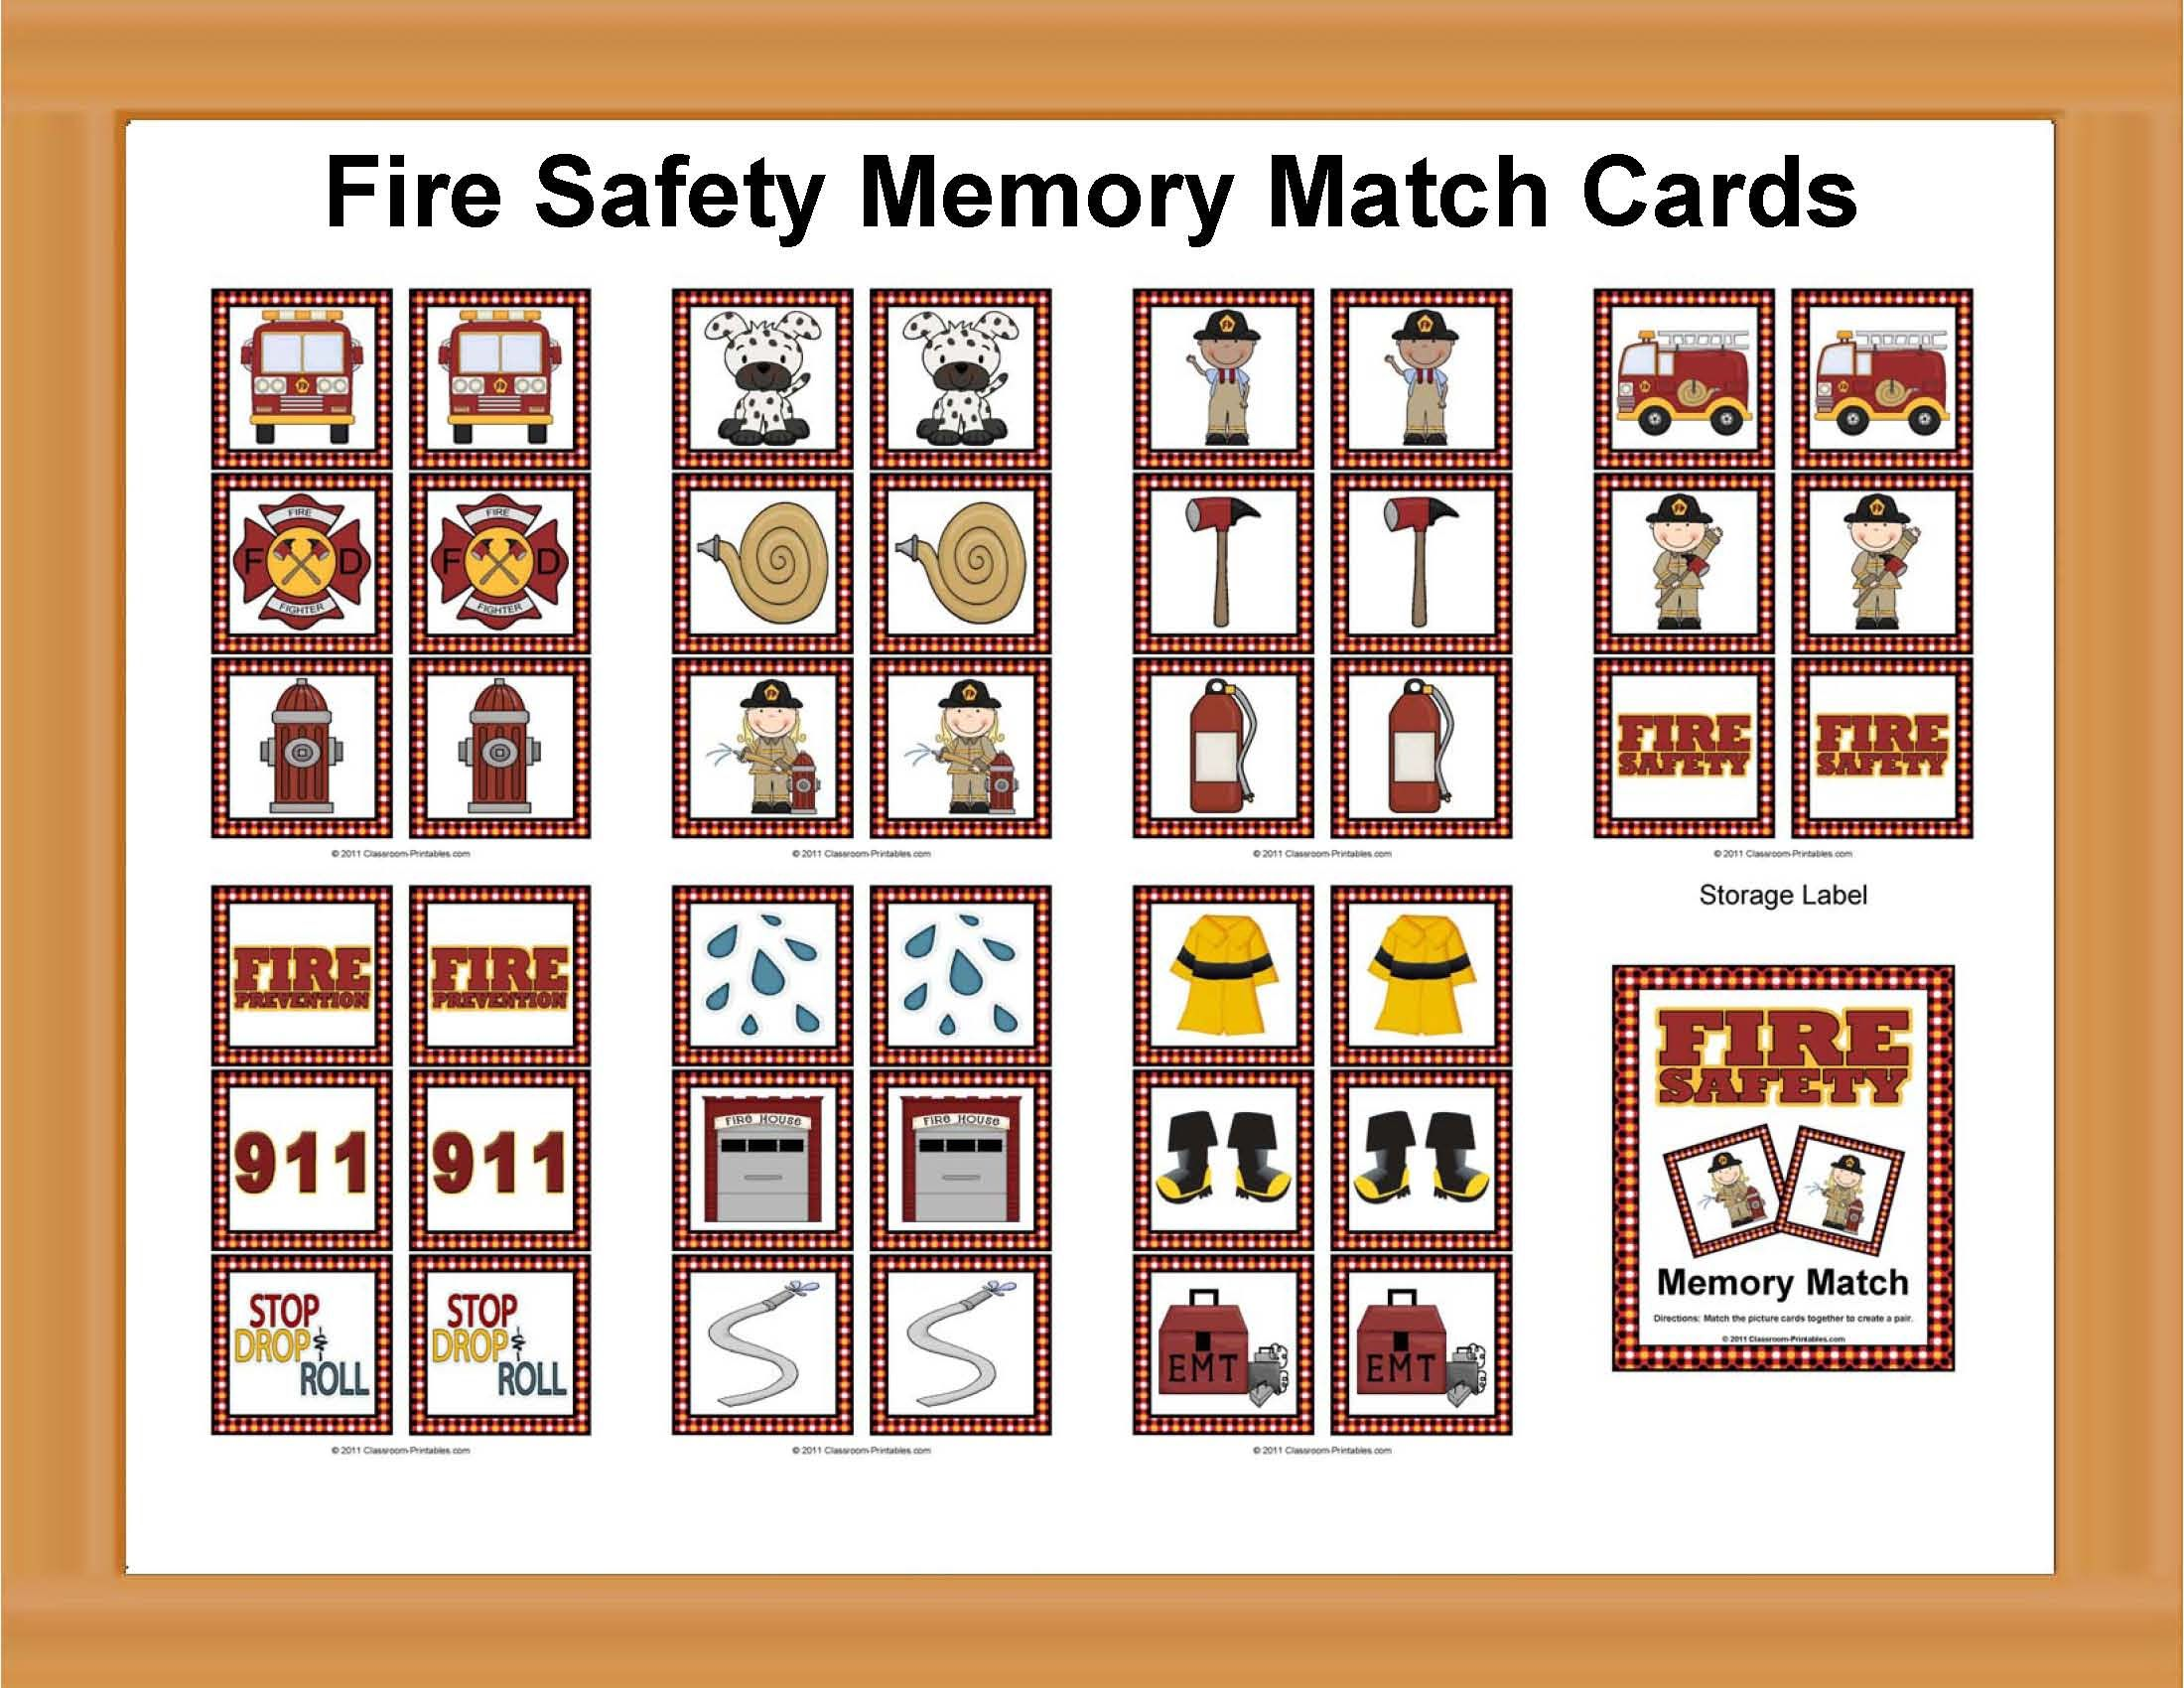 Fire Safety Memory Match Cards